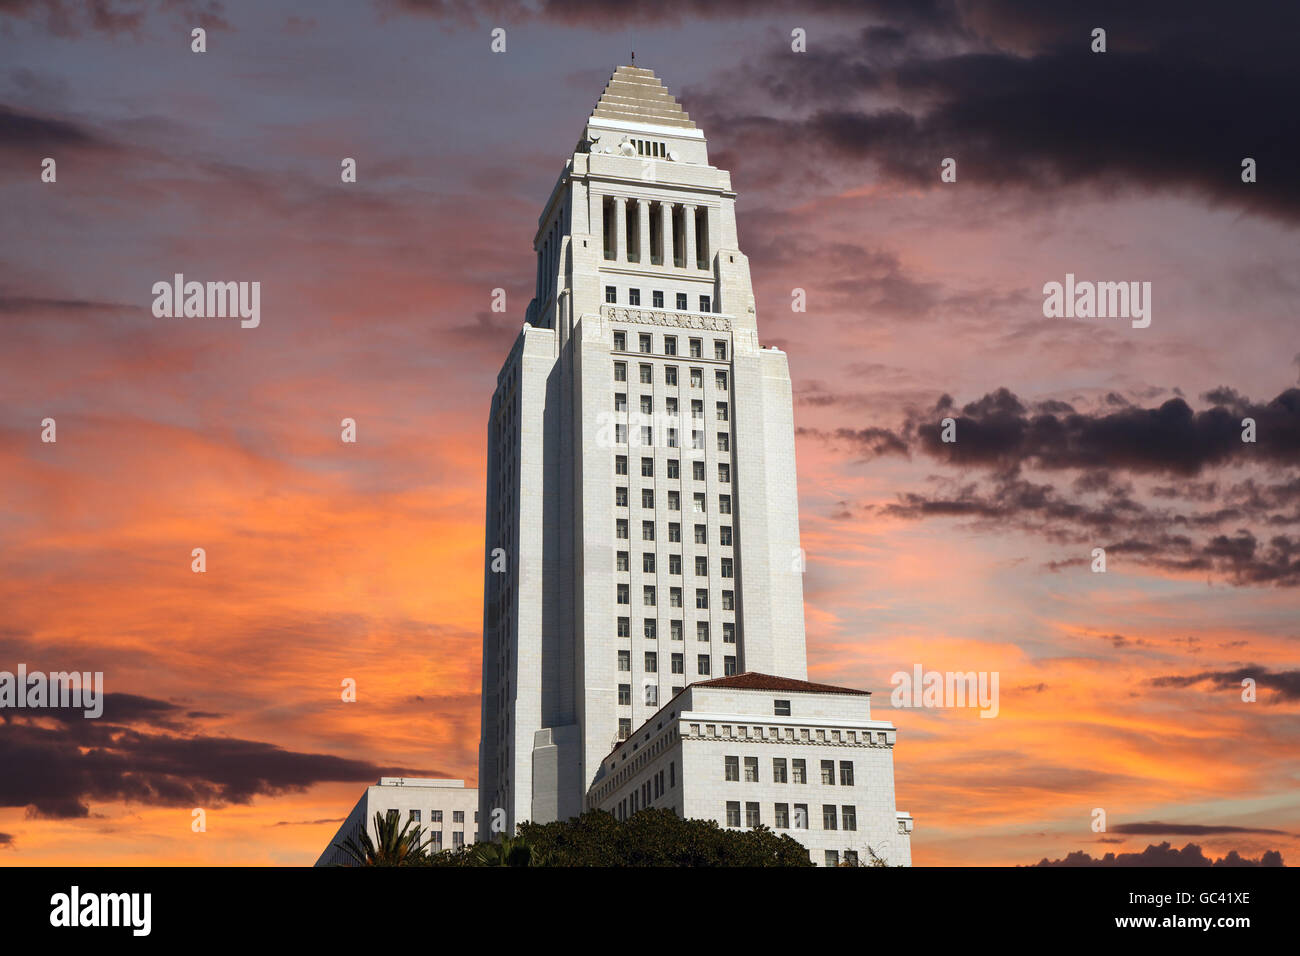 Los Angeles city hall building with sunrise sky. - Stock Image